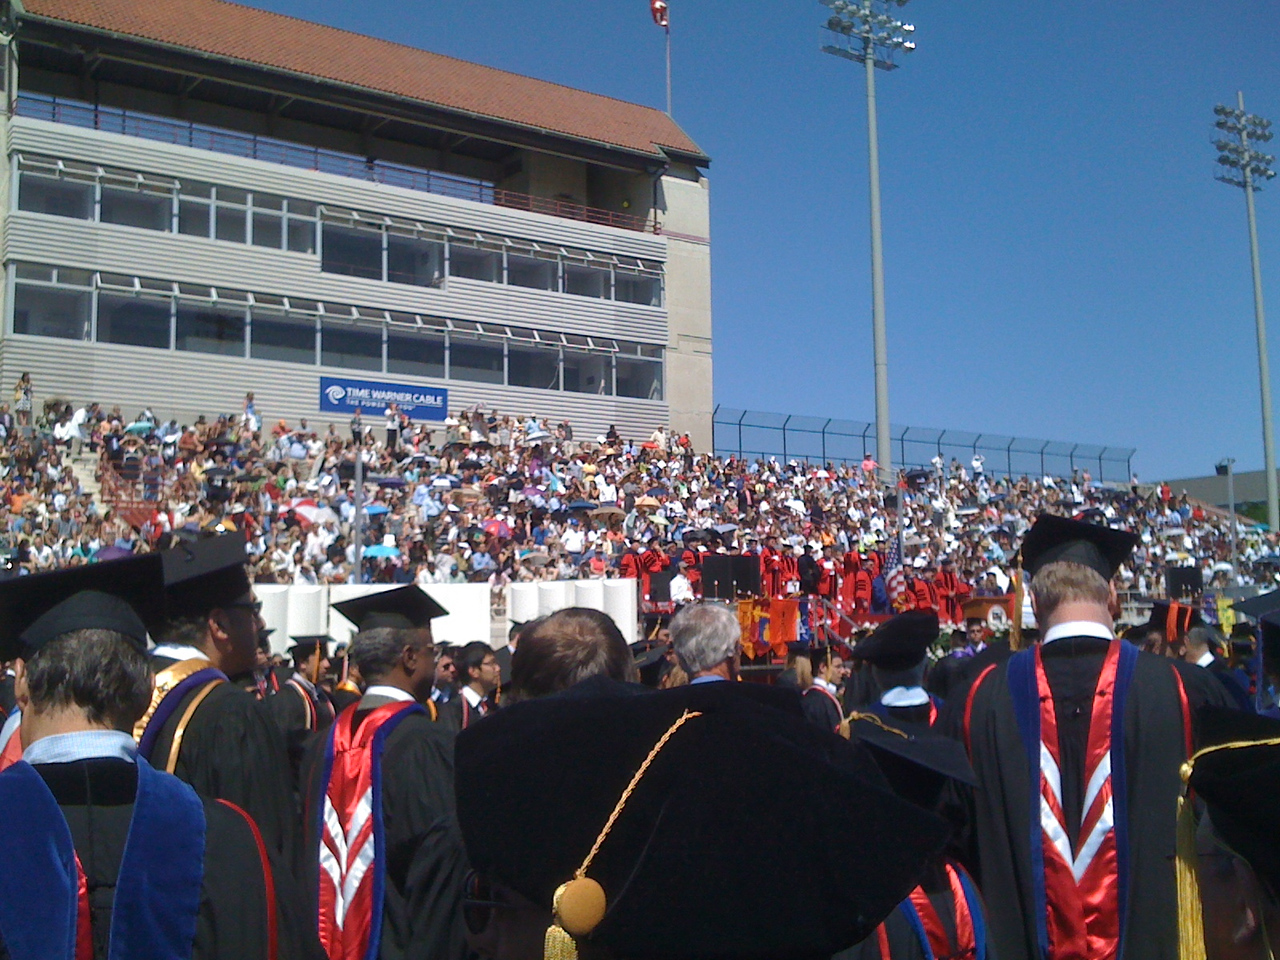 2010-05-30 - Cornell University's 142nd Commencement at Schoellkopfh Field (2)